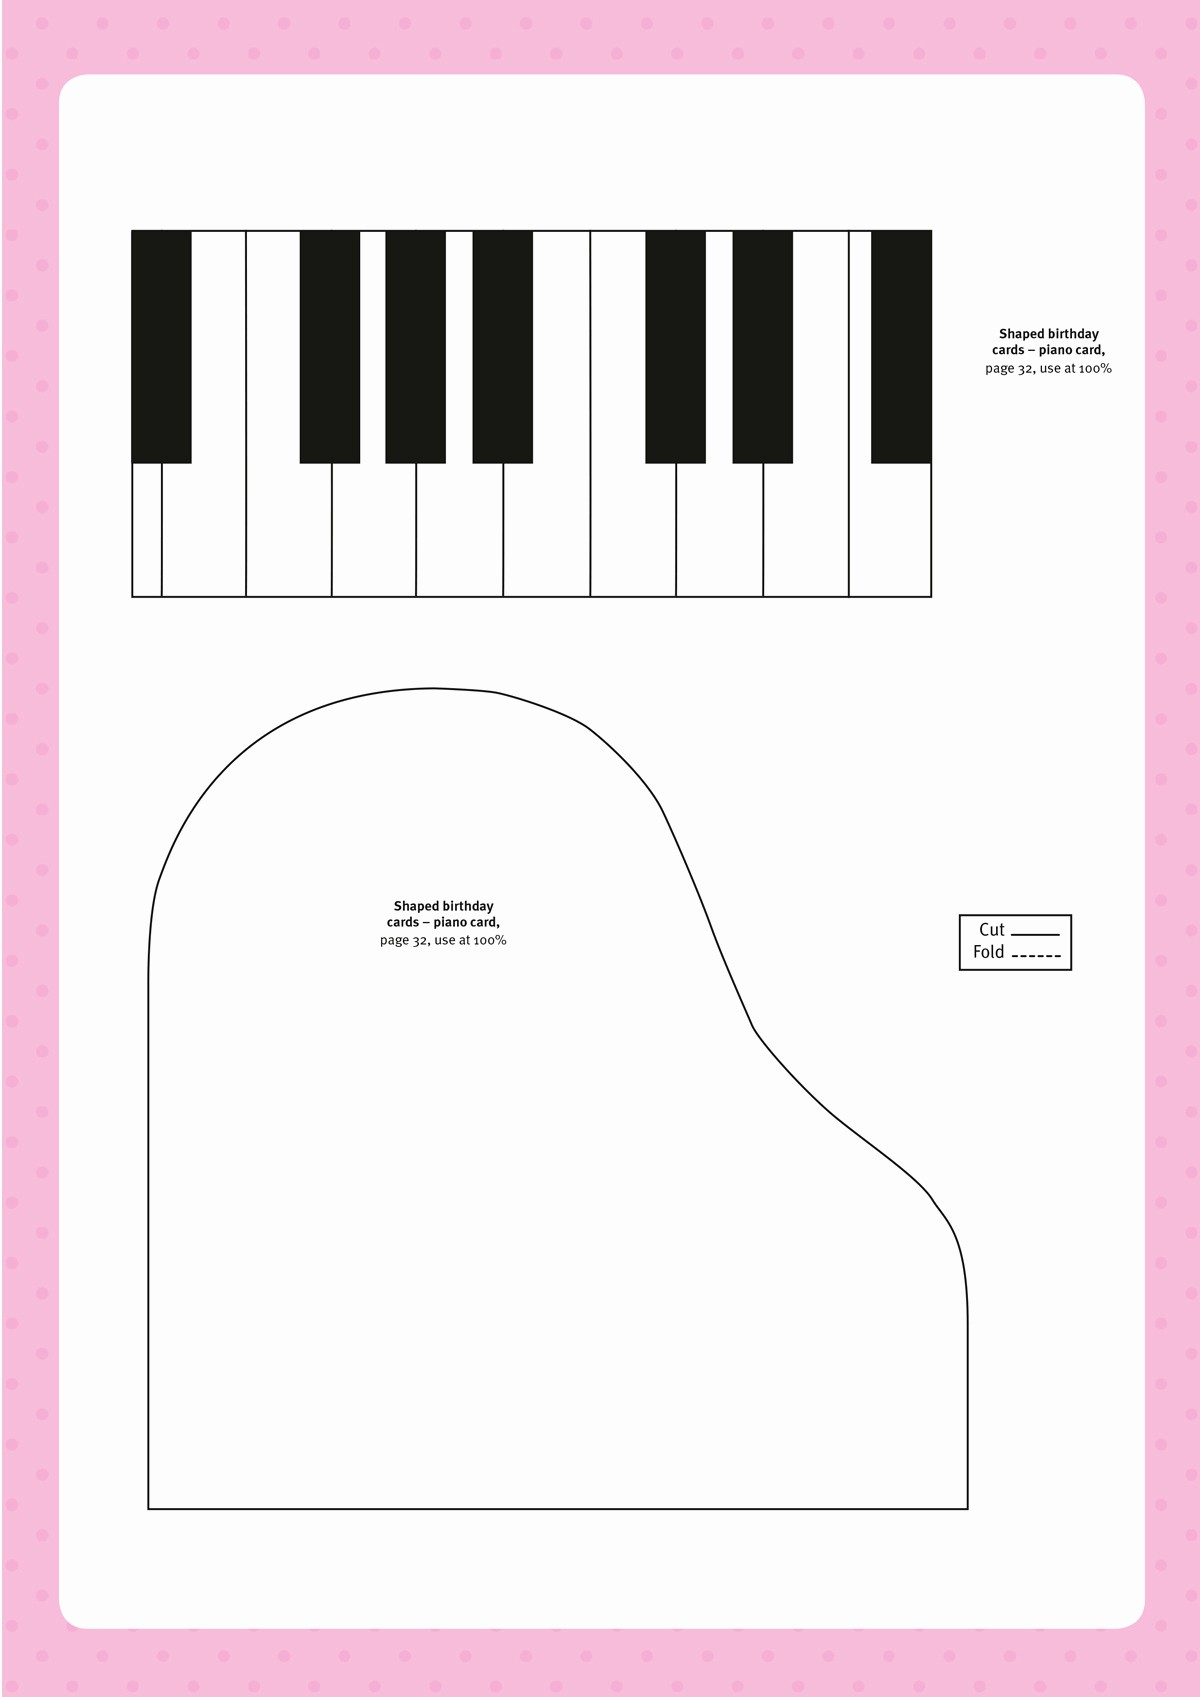 Templates for Cards Free Downloads New Free Card Making Templates From Papercraft Inspirations